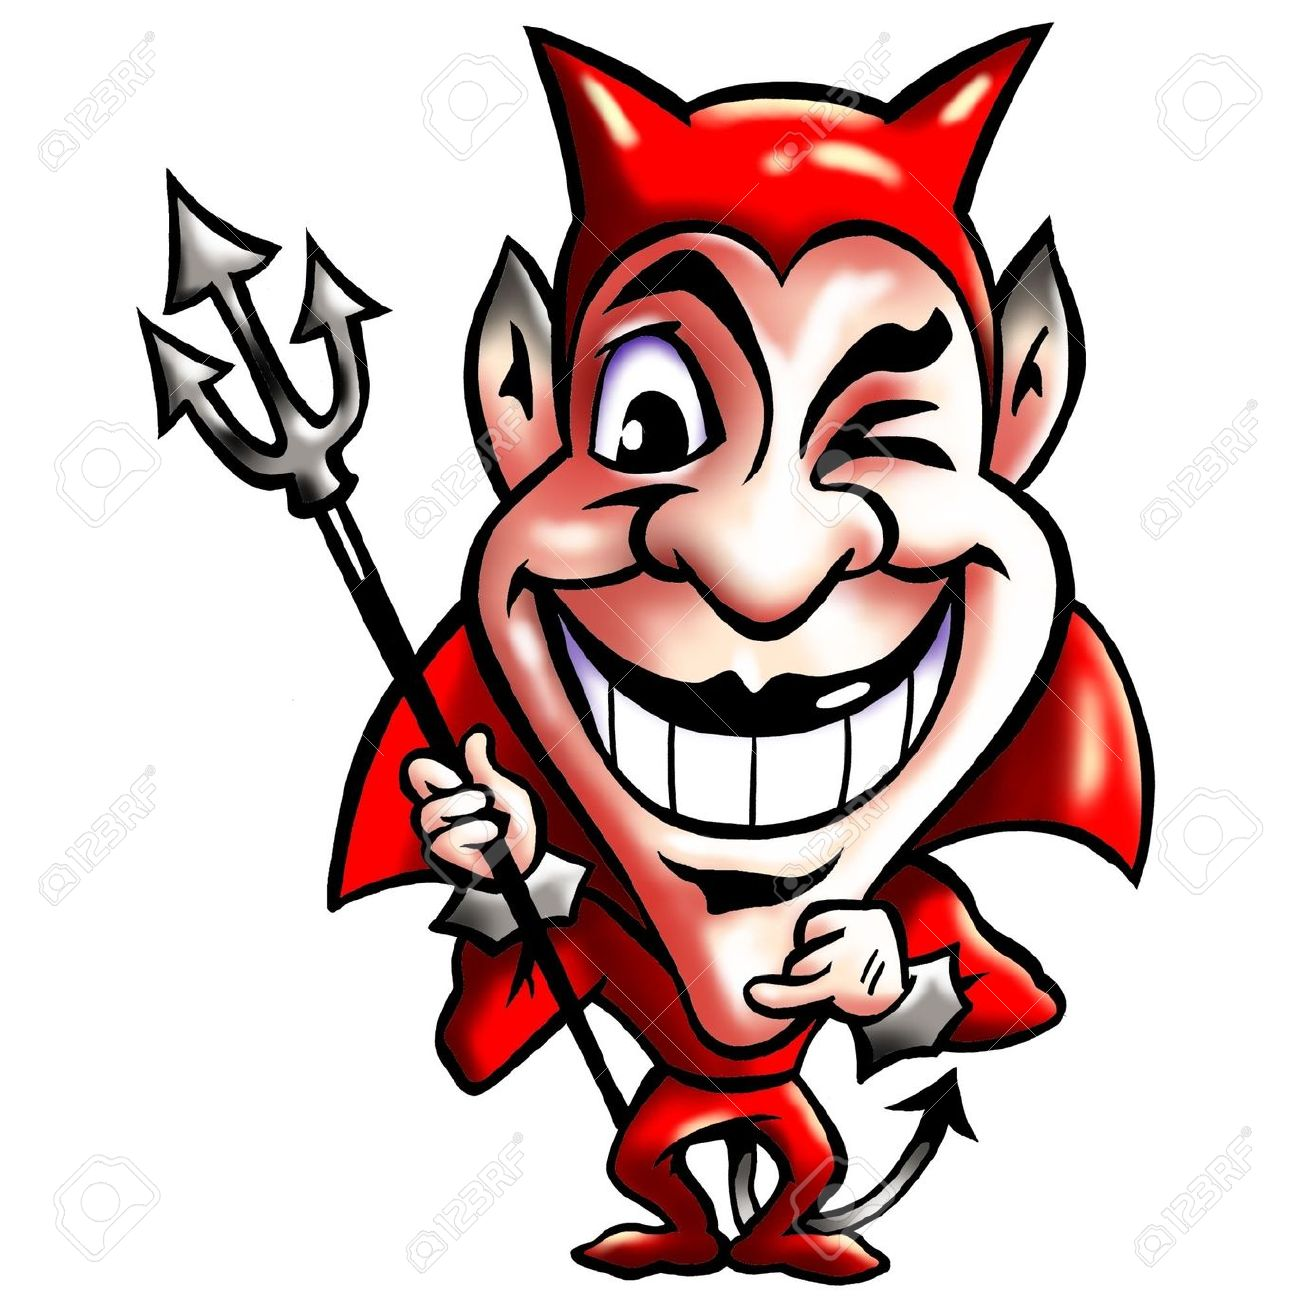 Cunning Smiling Red Devil Stock Photo, Picture And Royalty Free.